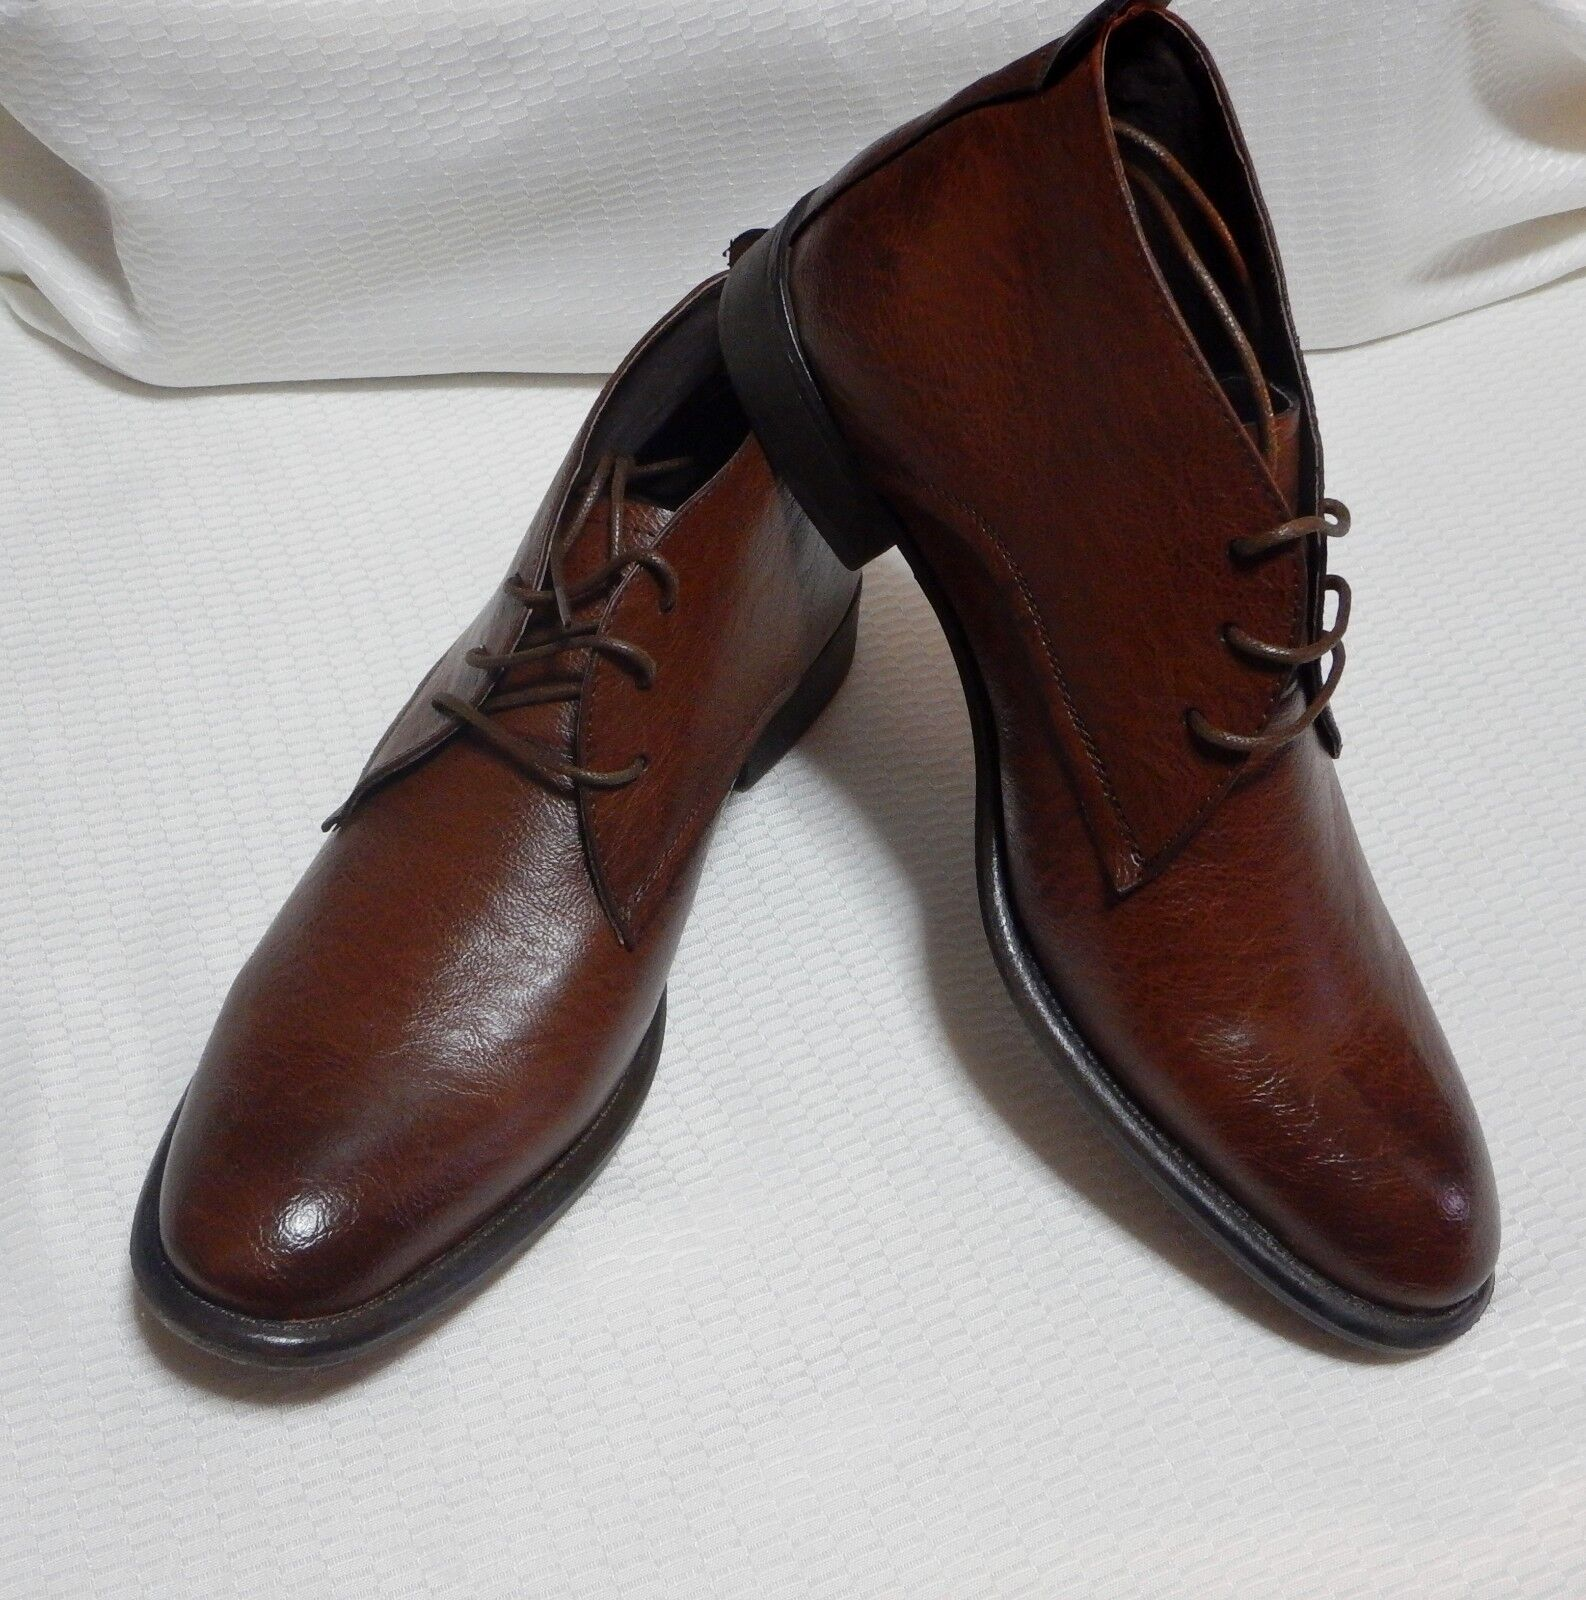 KENNETH COLE CHUKKA BOOT LACE UP ROUND ) TOE( COGNAC ) ROUND NEW SIZE 11. M  #1496-1 70c109